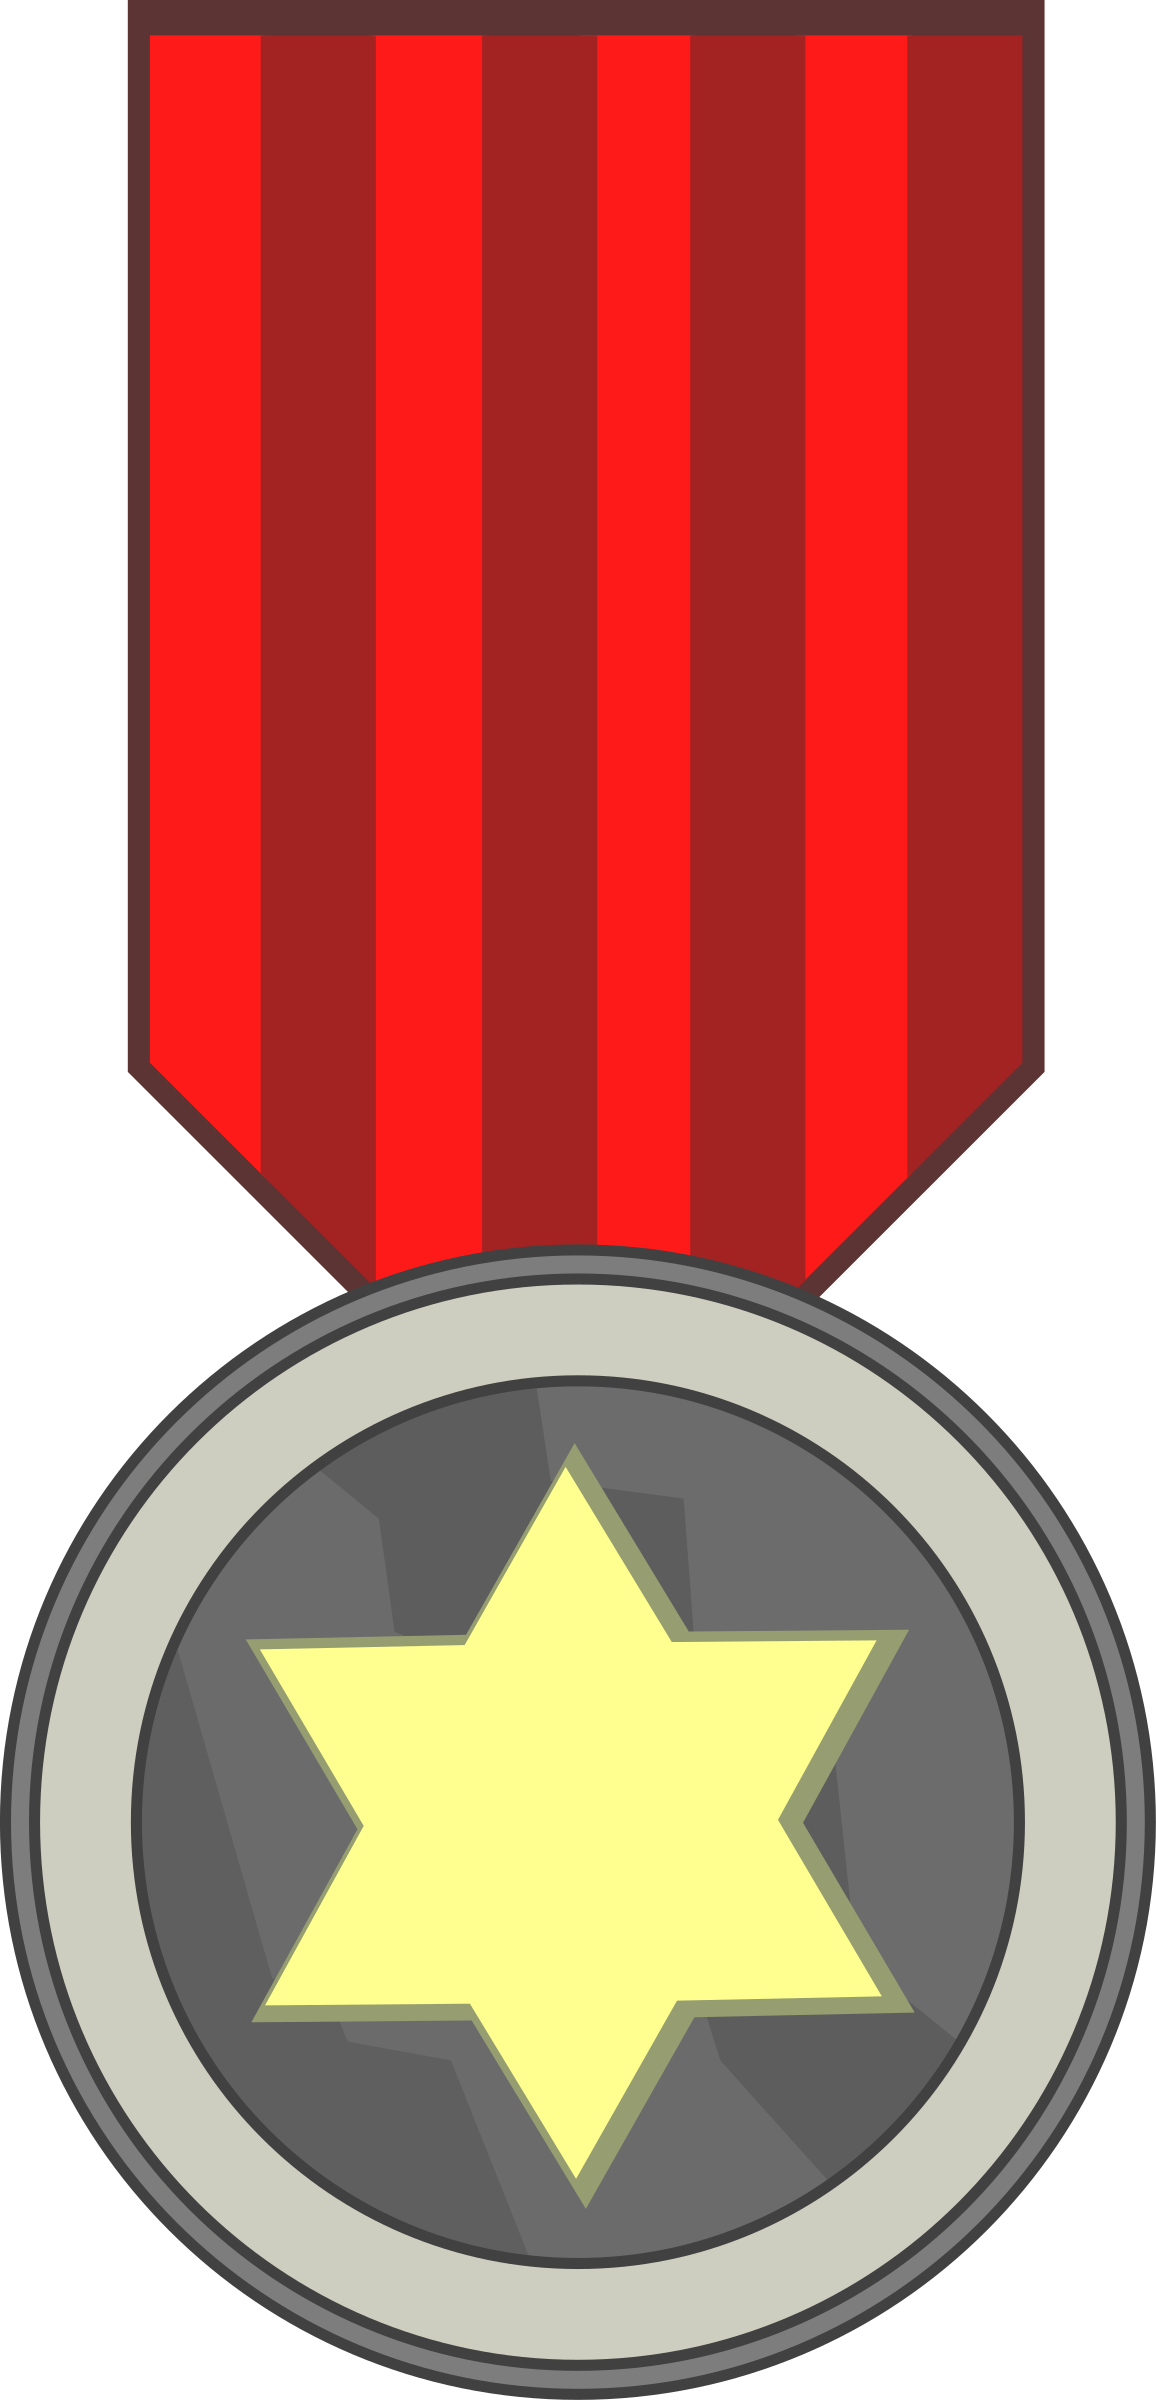 star award medal by Tavin